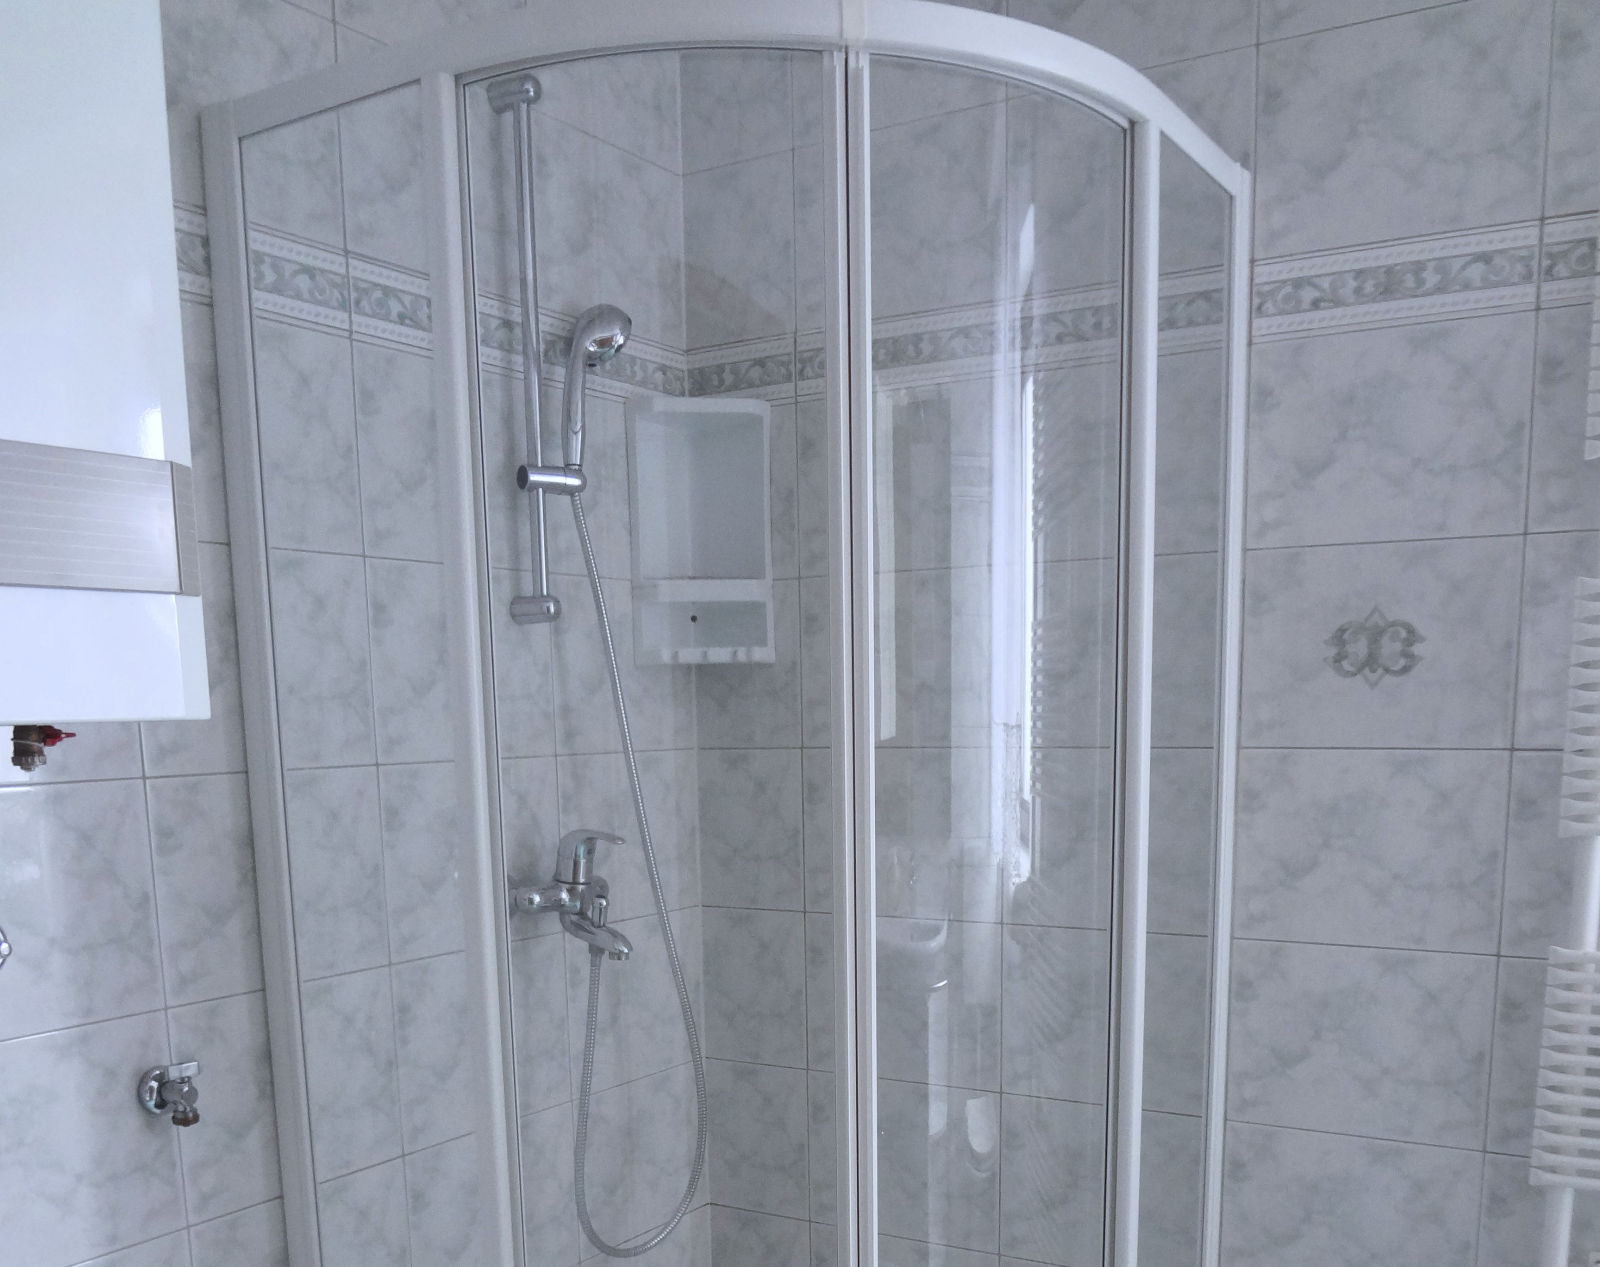 A glass shower stall in the bathroom of the Fine Stay Bled apartment in Lake Bled, Slovenia